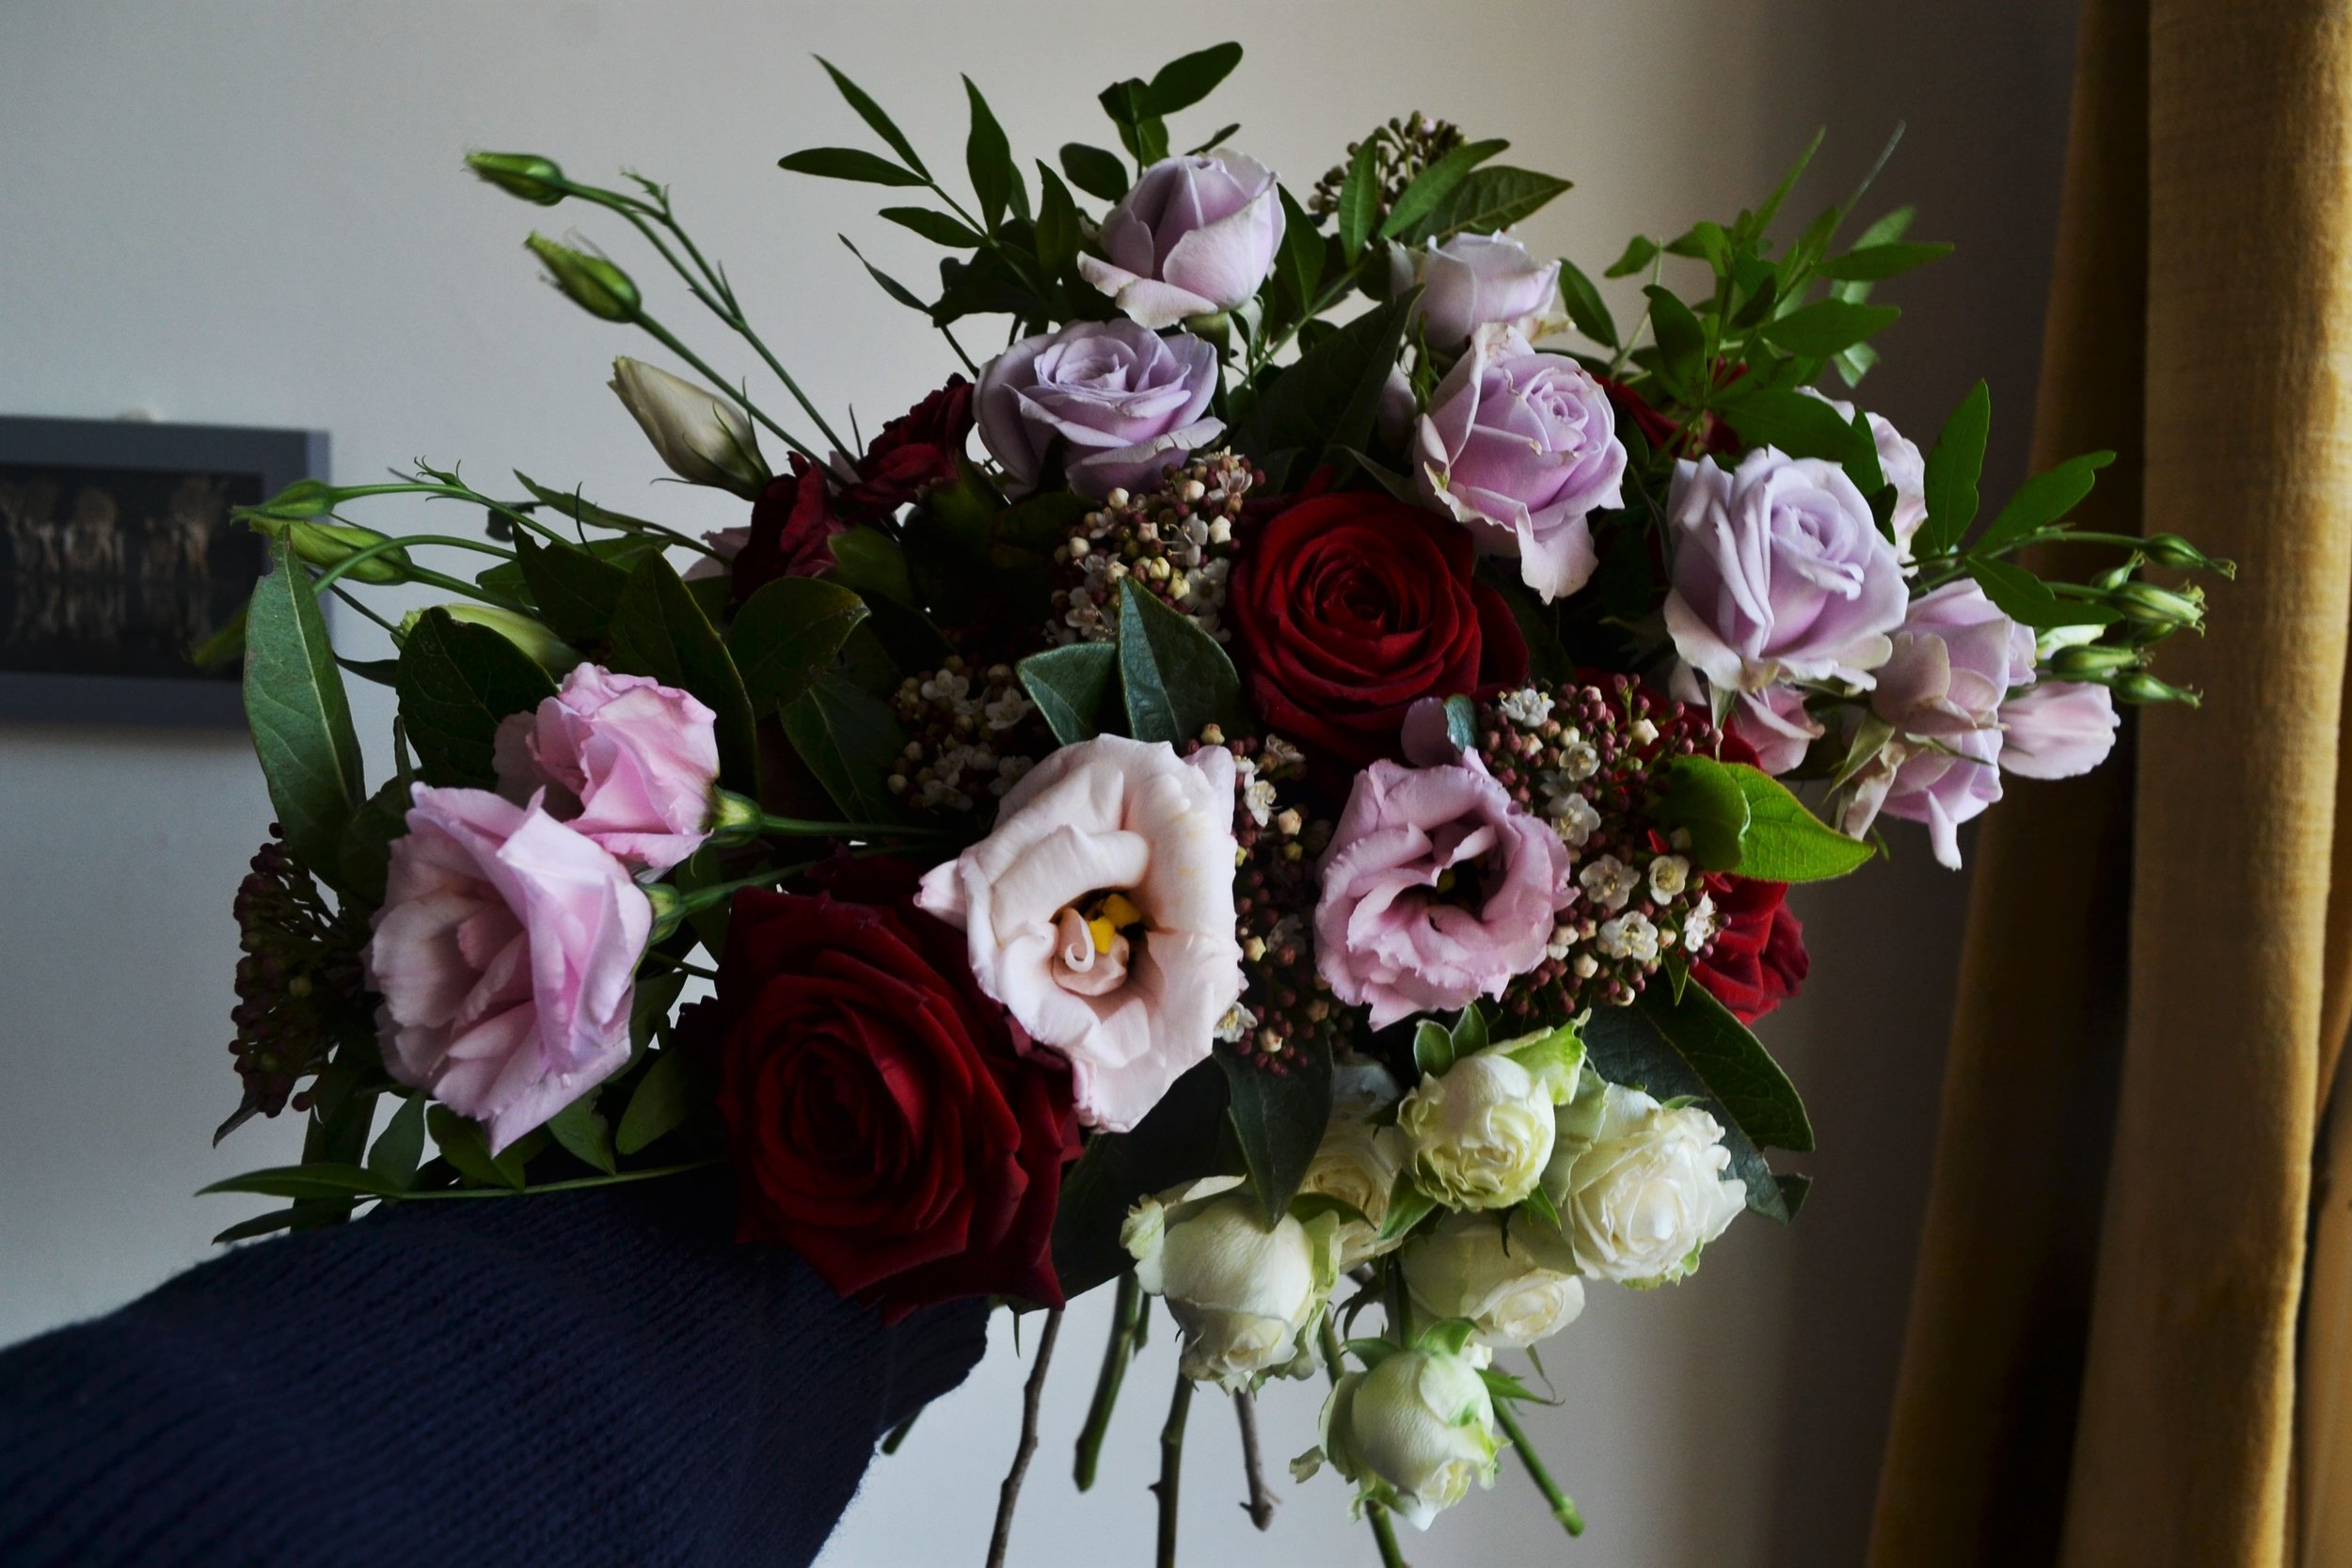 Webb-and-Farrer-Brighton-Florist-Sussex-Wedding-Flowers-Blush-Pink-Burgundy-Bridal-Bouquet (5).JPG